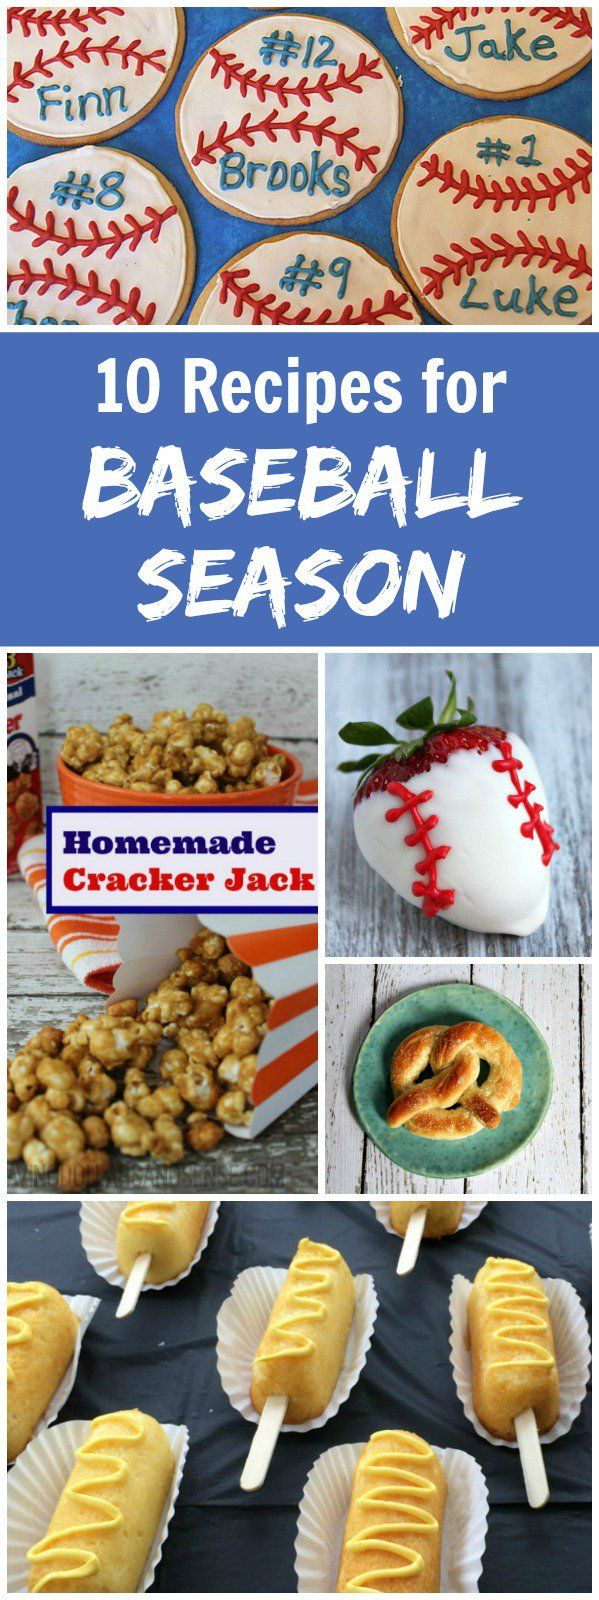 10 Recipes for Baseball Season:  Baseball Cookies, Baseball Cupcakes, Cracker Jacks, Homemade Soft Pretzels and more!